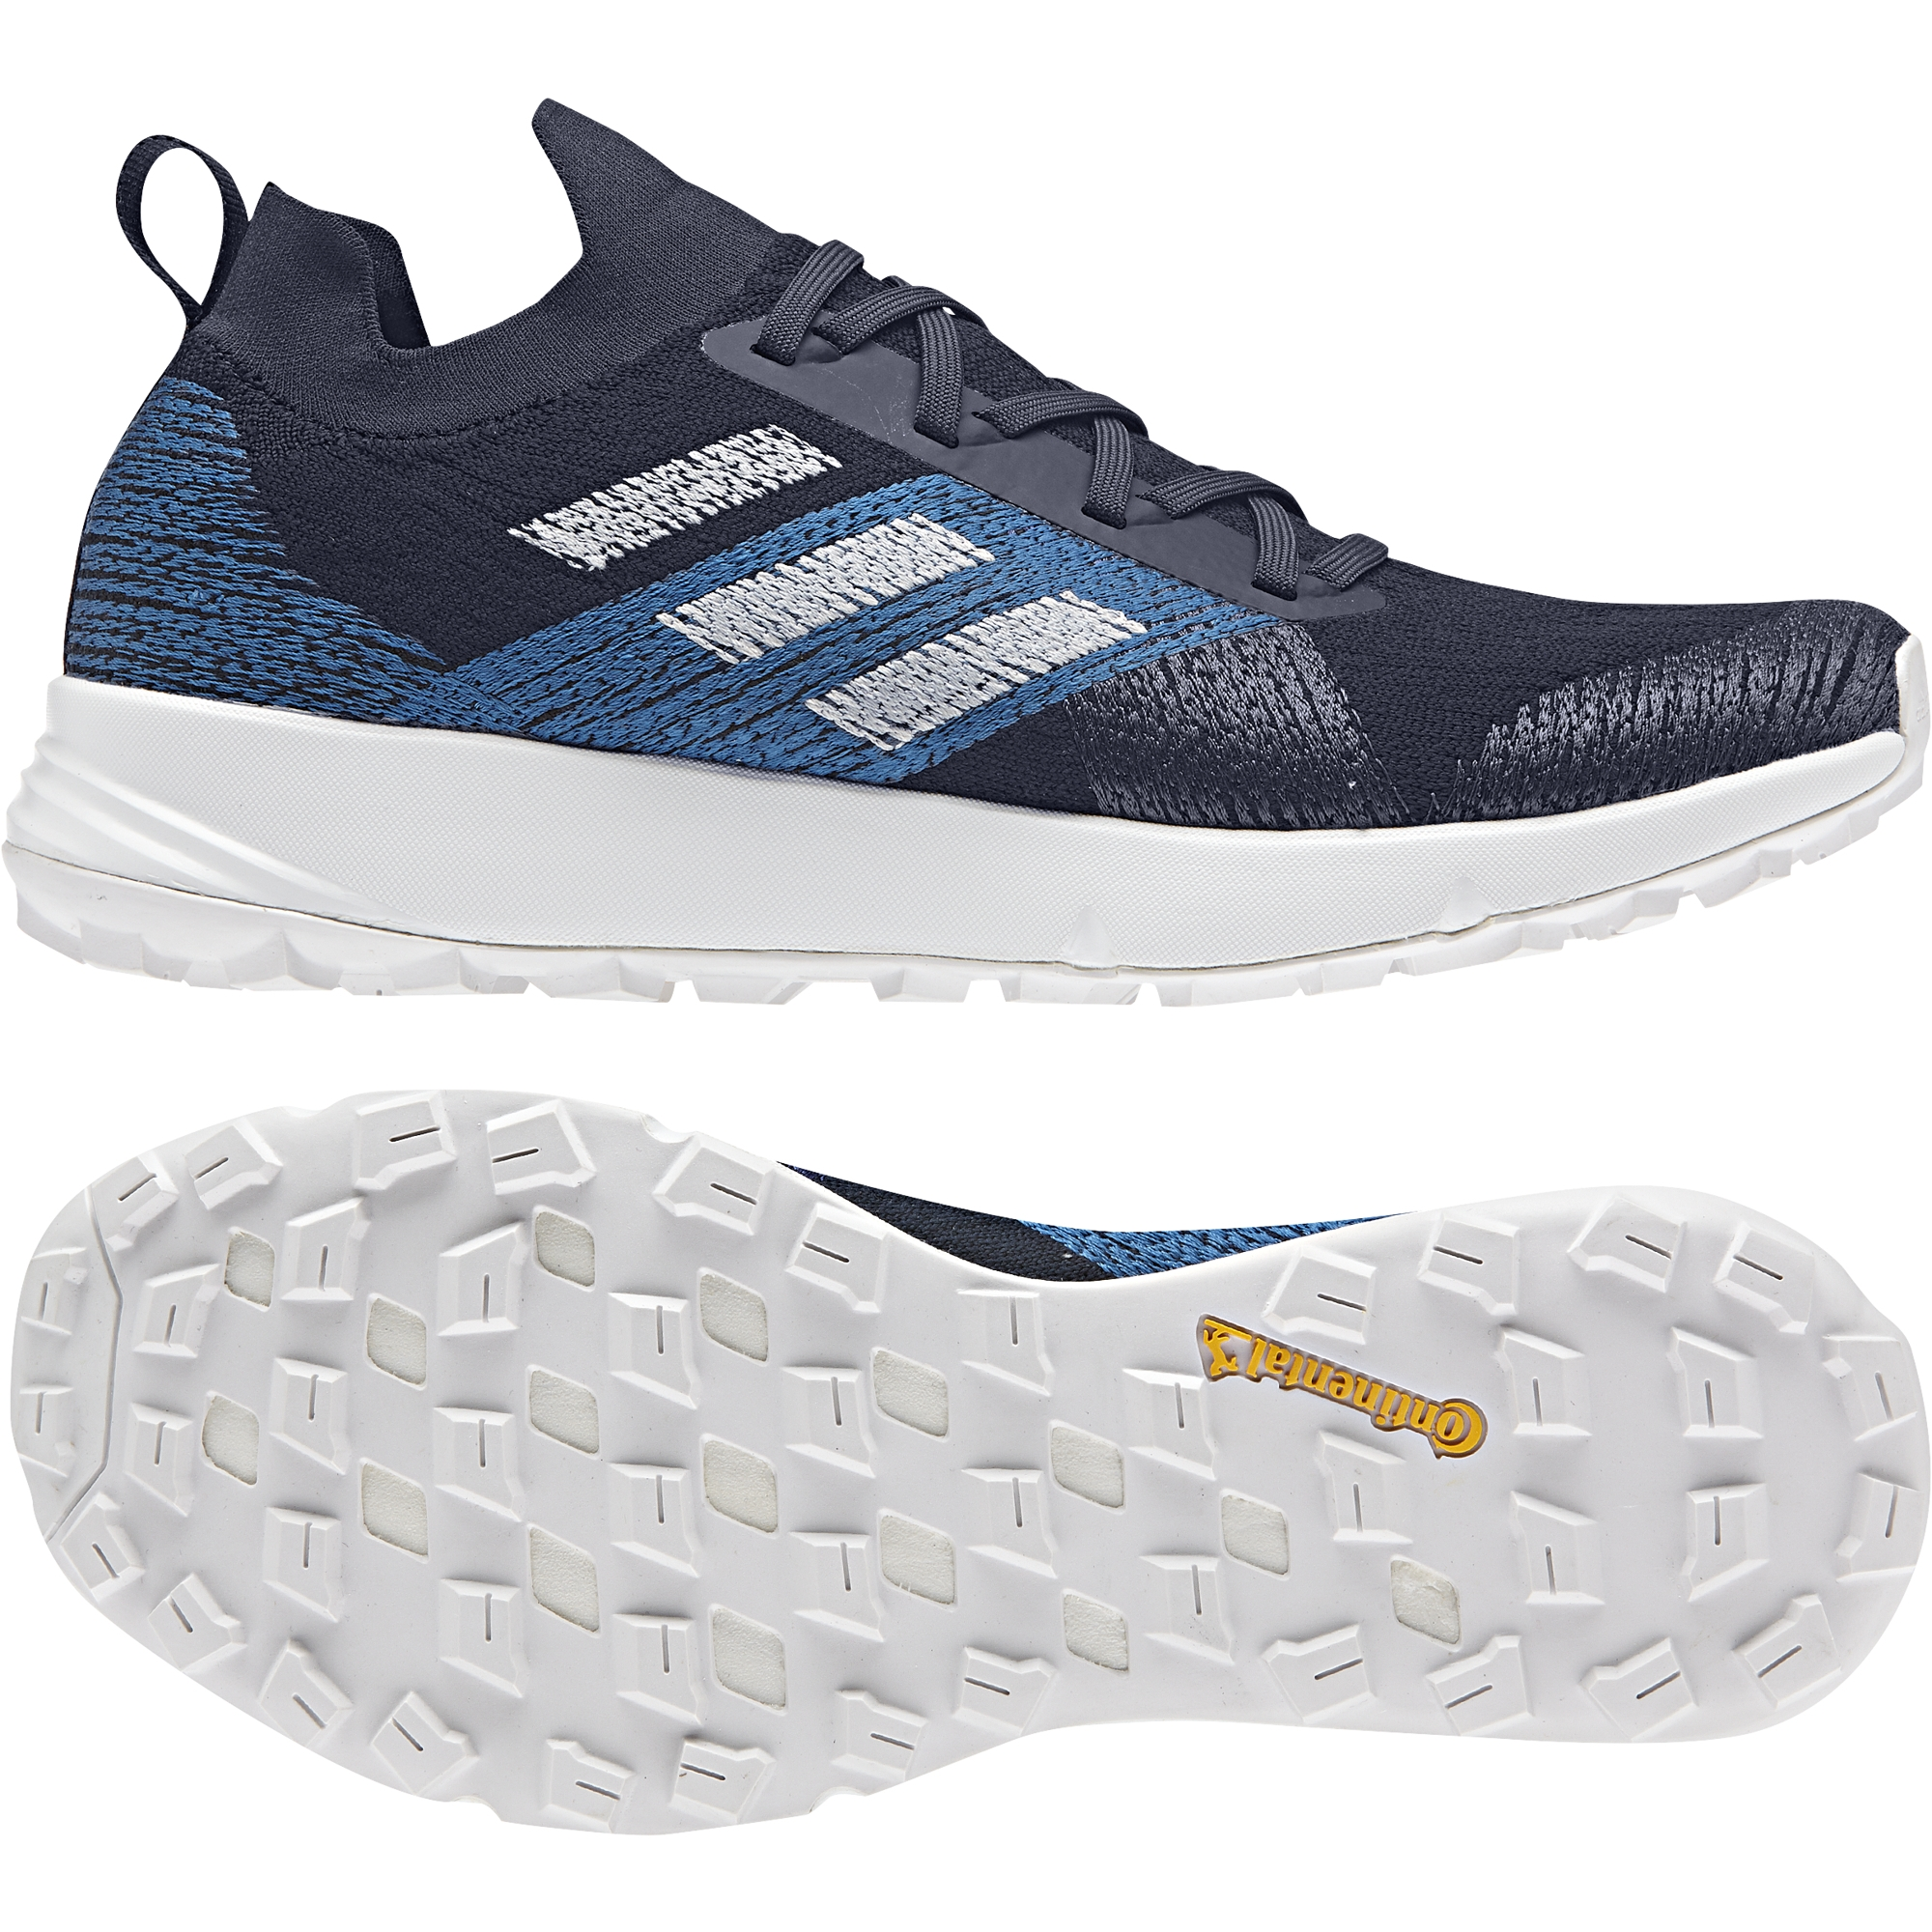 Two Chaussures Parley Adidas Chaussures Terrex Terrex Adidas q878r6Xw